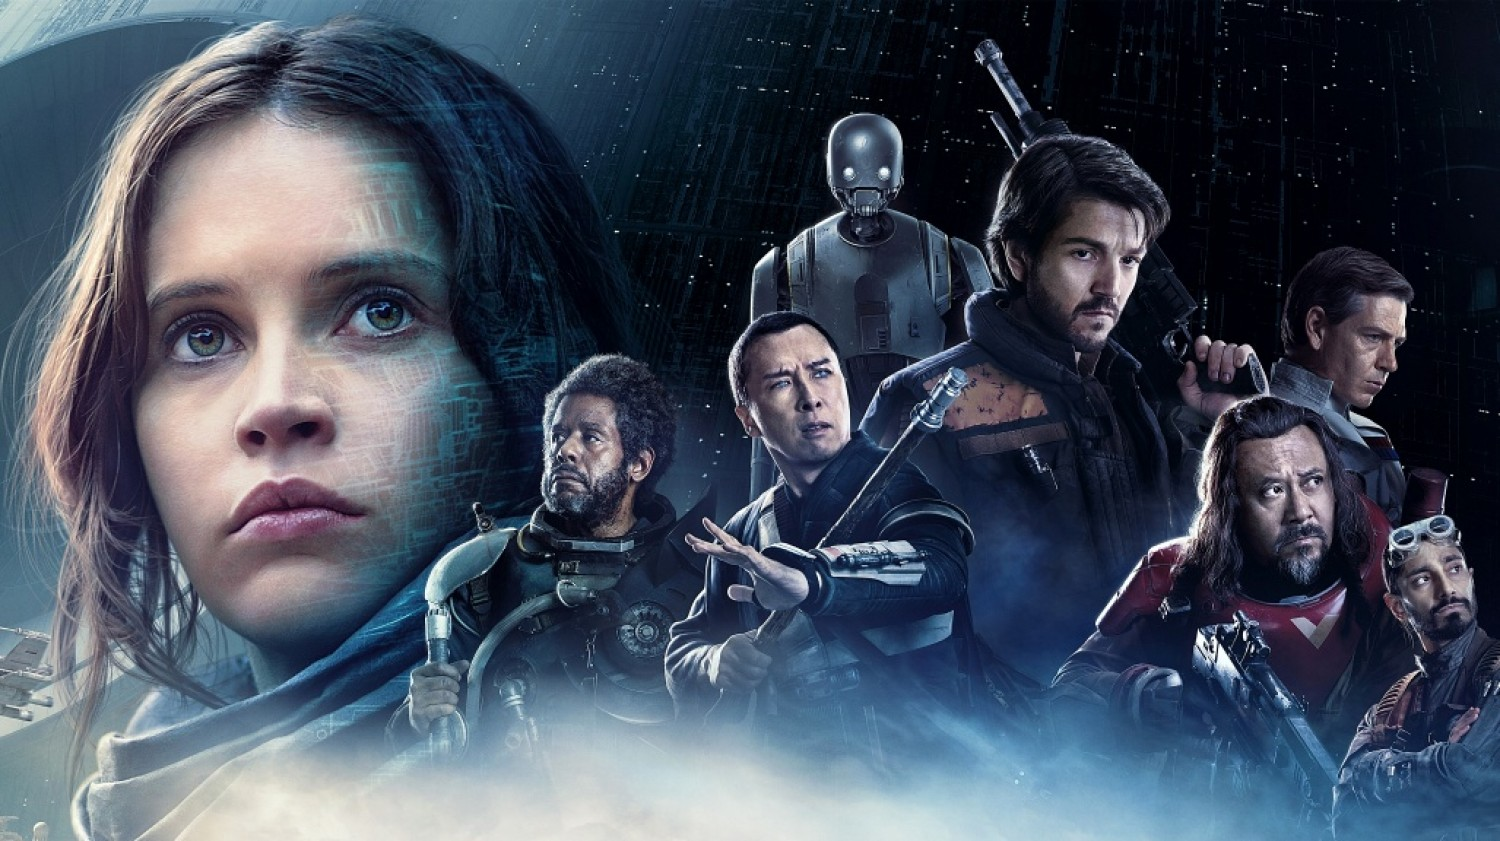 Rogue One: A Star Wars Story (2016) Gareth Edwards - Movie Review